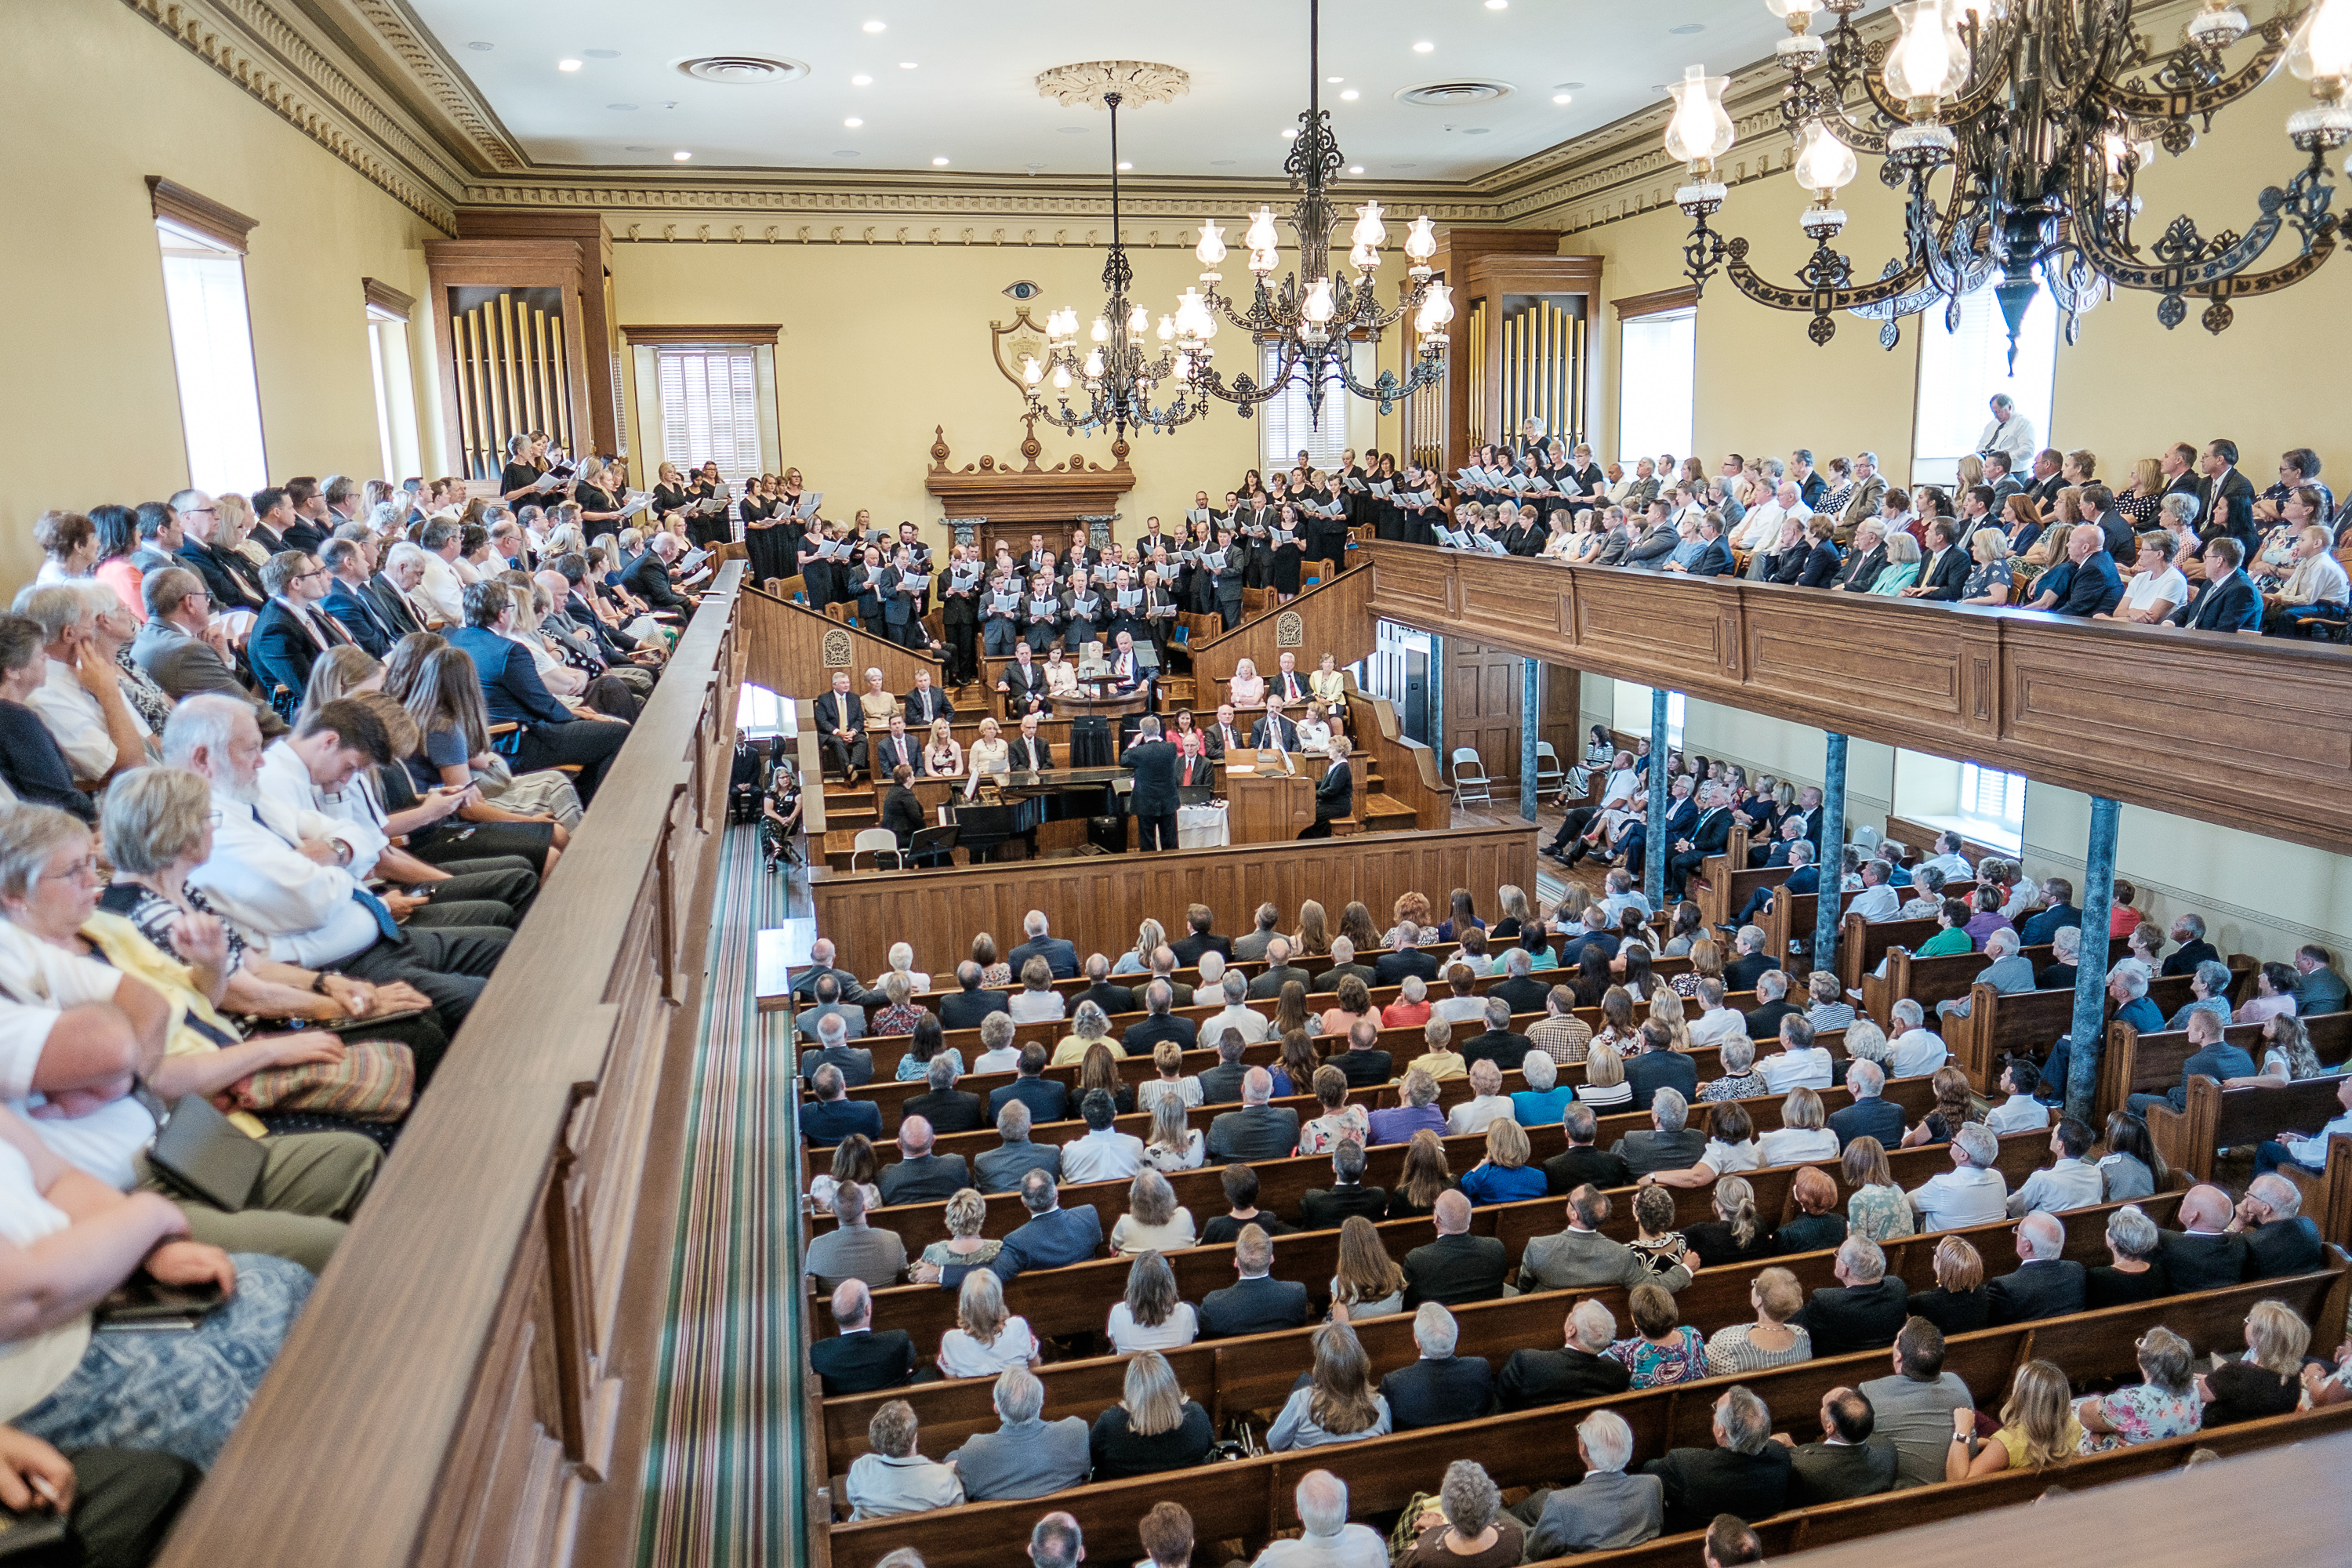 Members of the St. George Utah Stake Choir, conducted by Dr. Ken Peterson, sing a hymn Saturday, July 28, 2018, at the St. George Tabernacle in St. George, Utah. The building was rededicated after a two-year renovation.